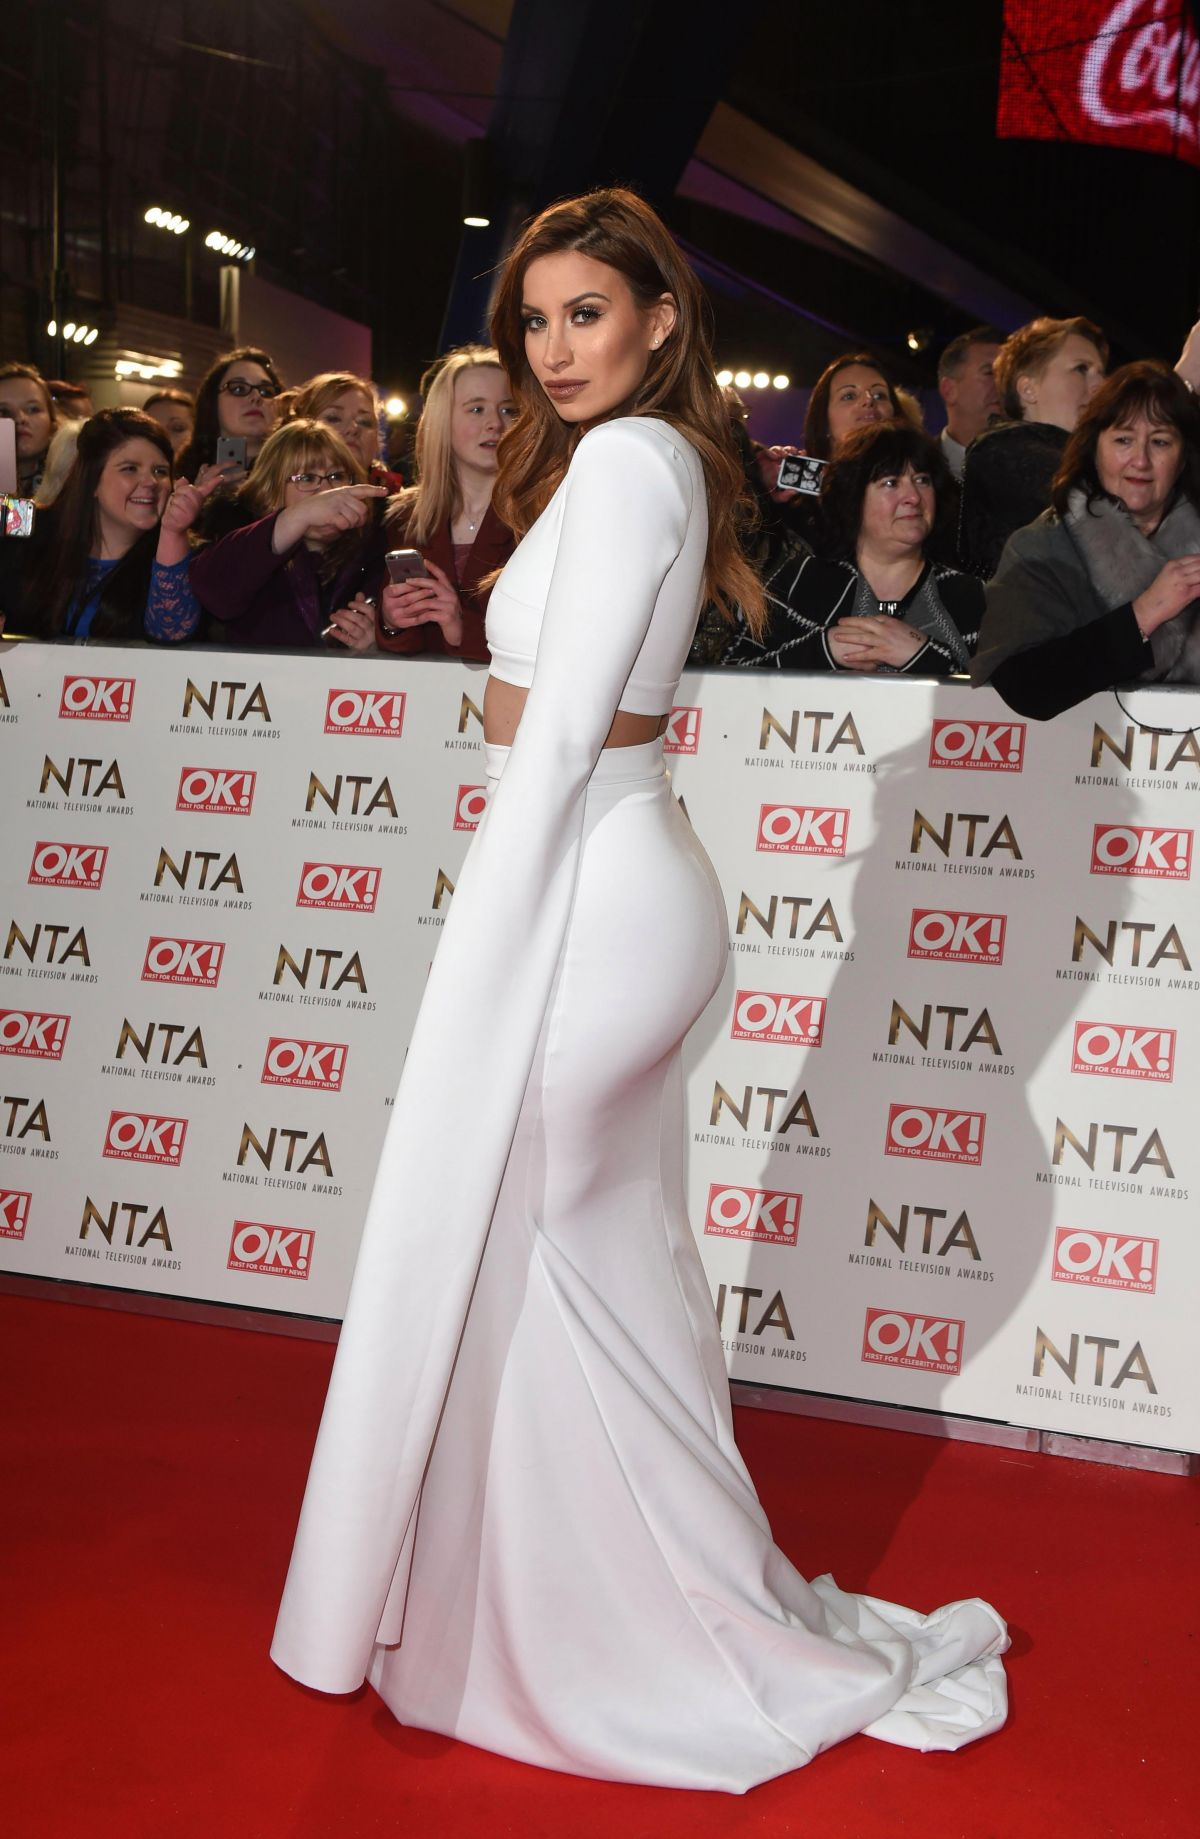 FERNE MCCANN at National Television Awards in London 01/25/2017